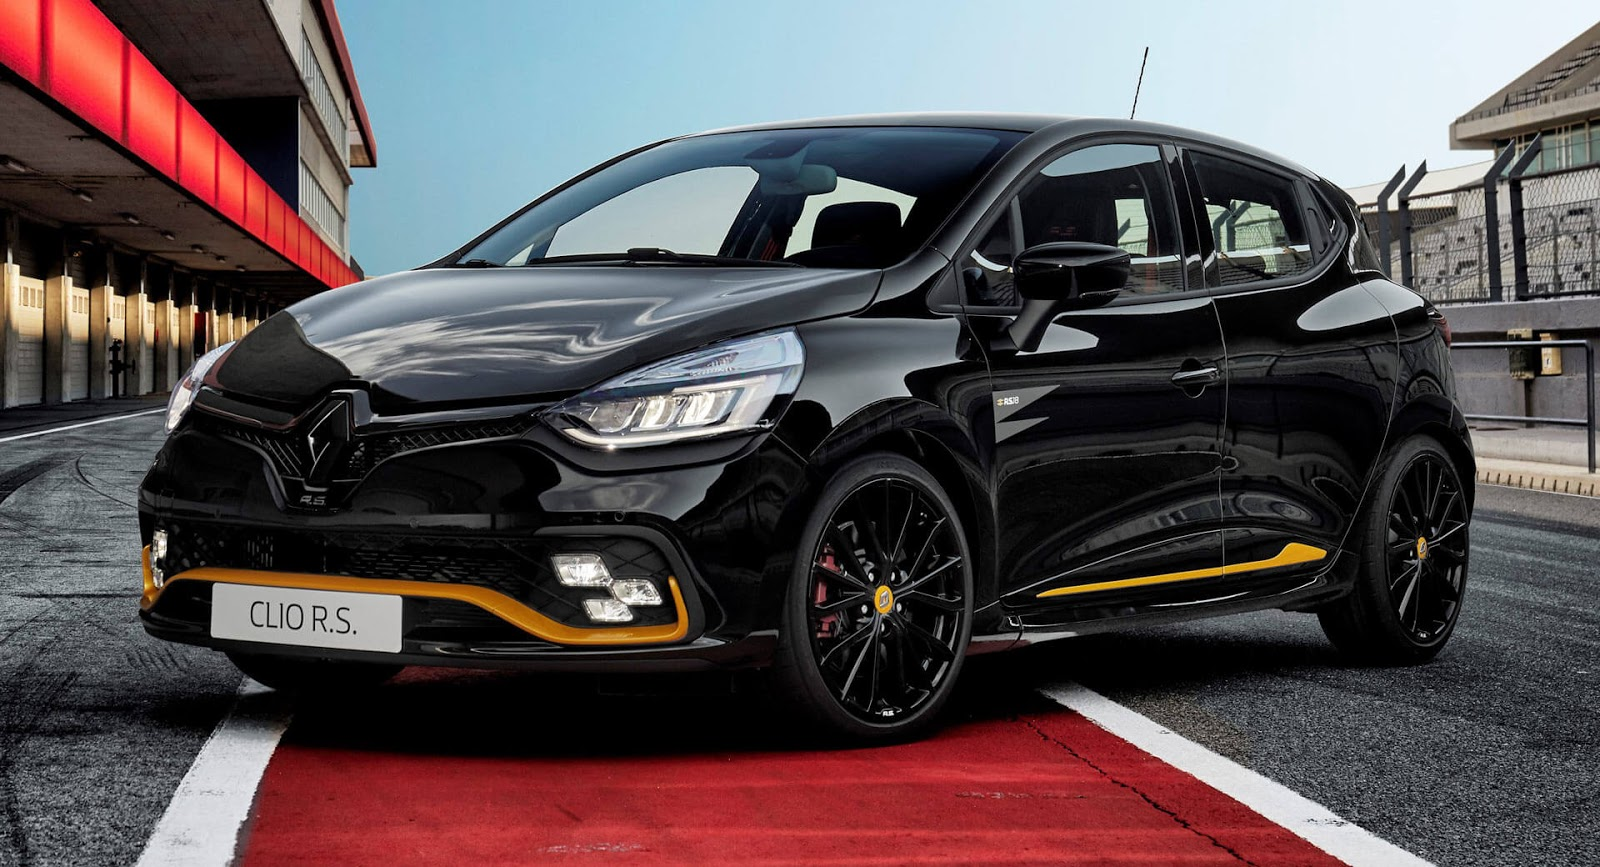 renault clio r s 18 adds f1 theme for special edition. Black Bedroom Furniture Sets. Home Design Ideas